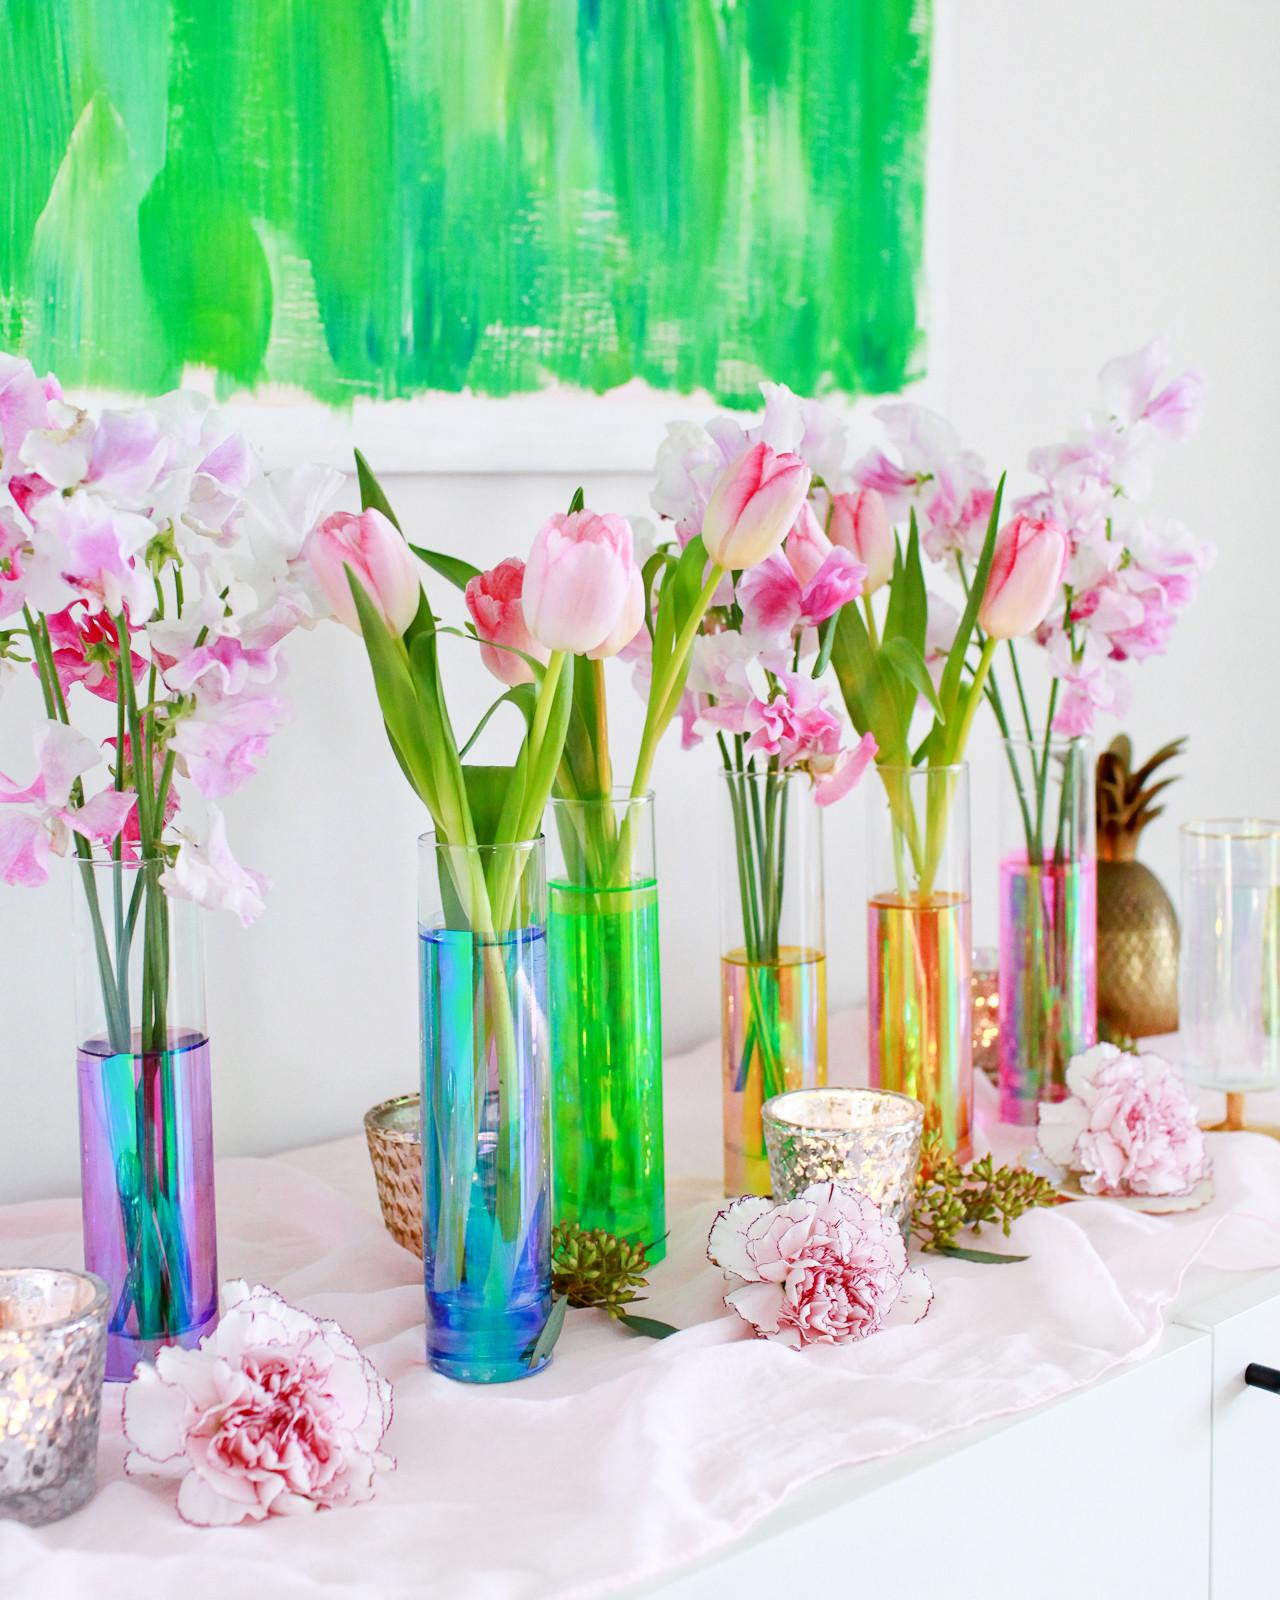 Diy Iridescent Rainbow Vases